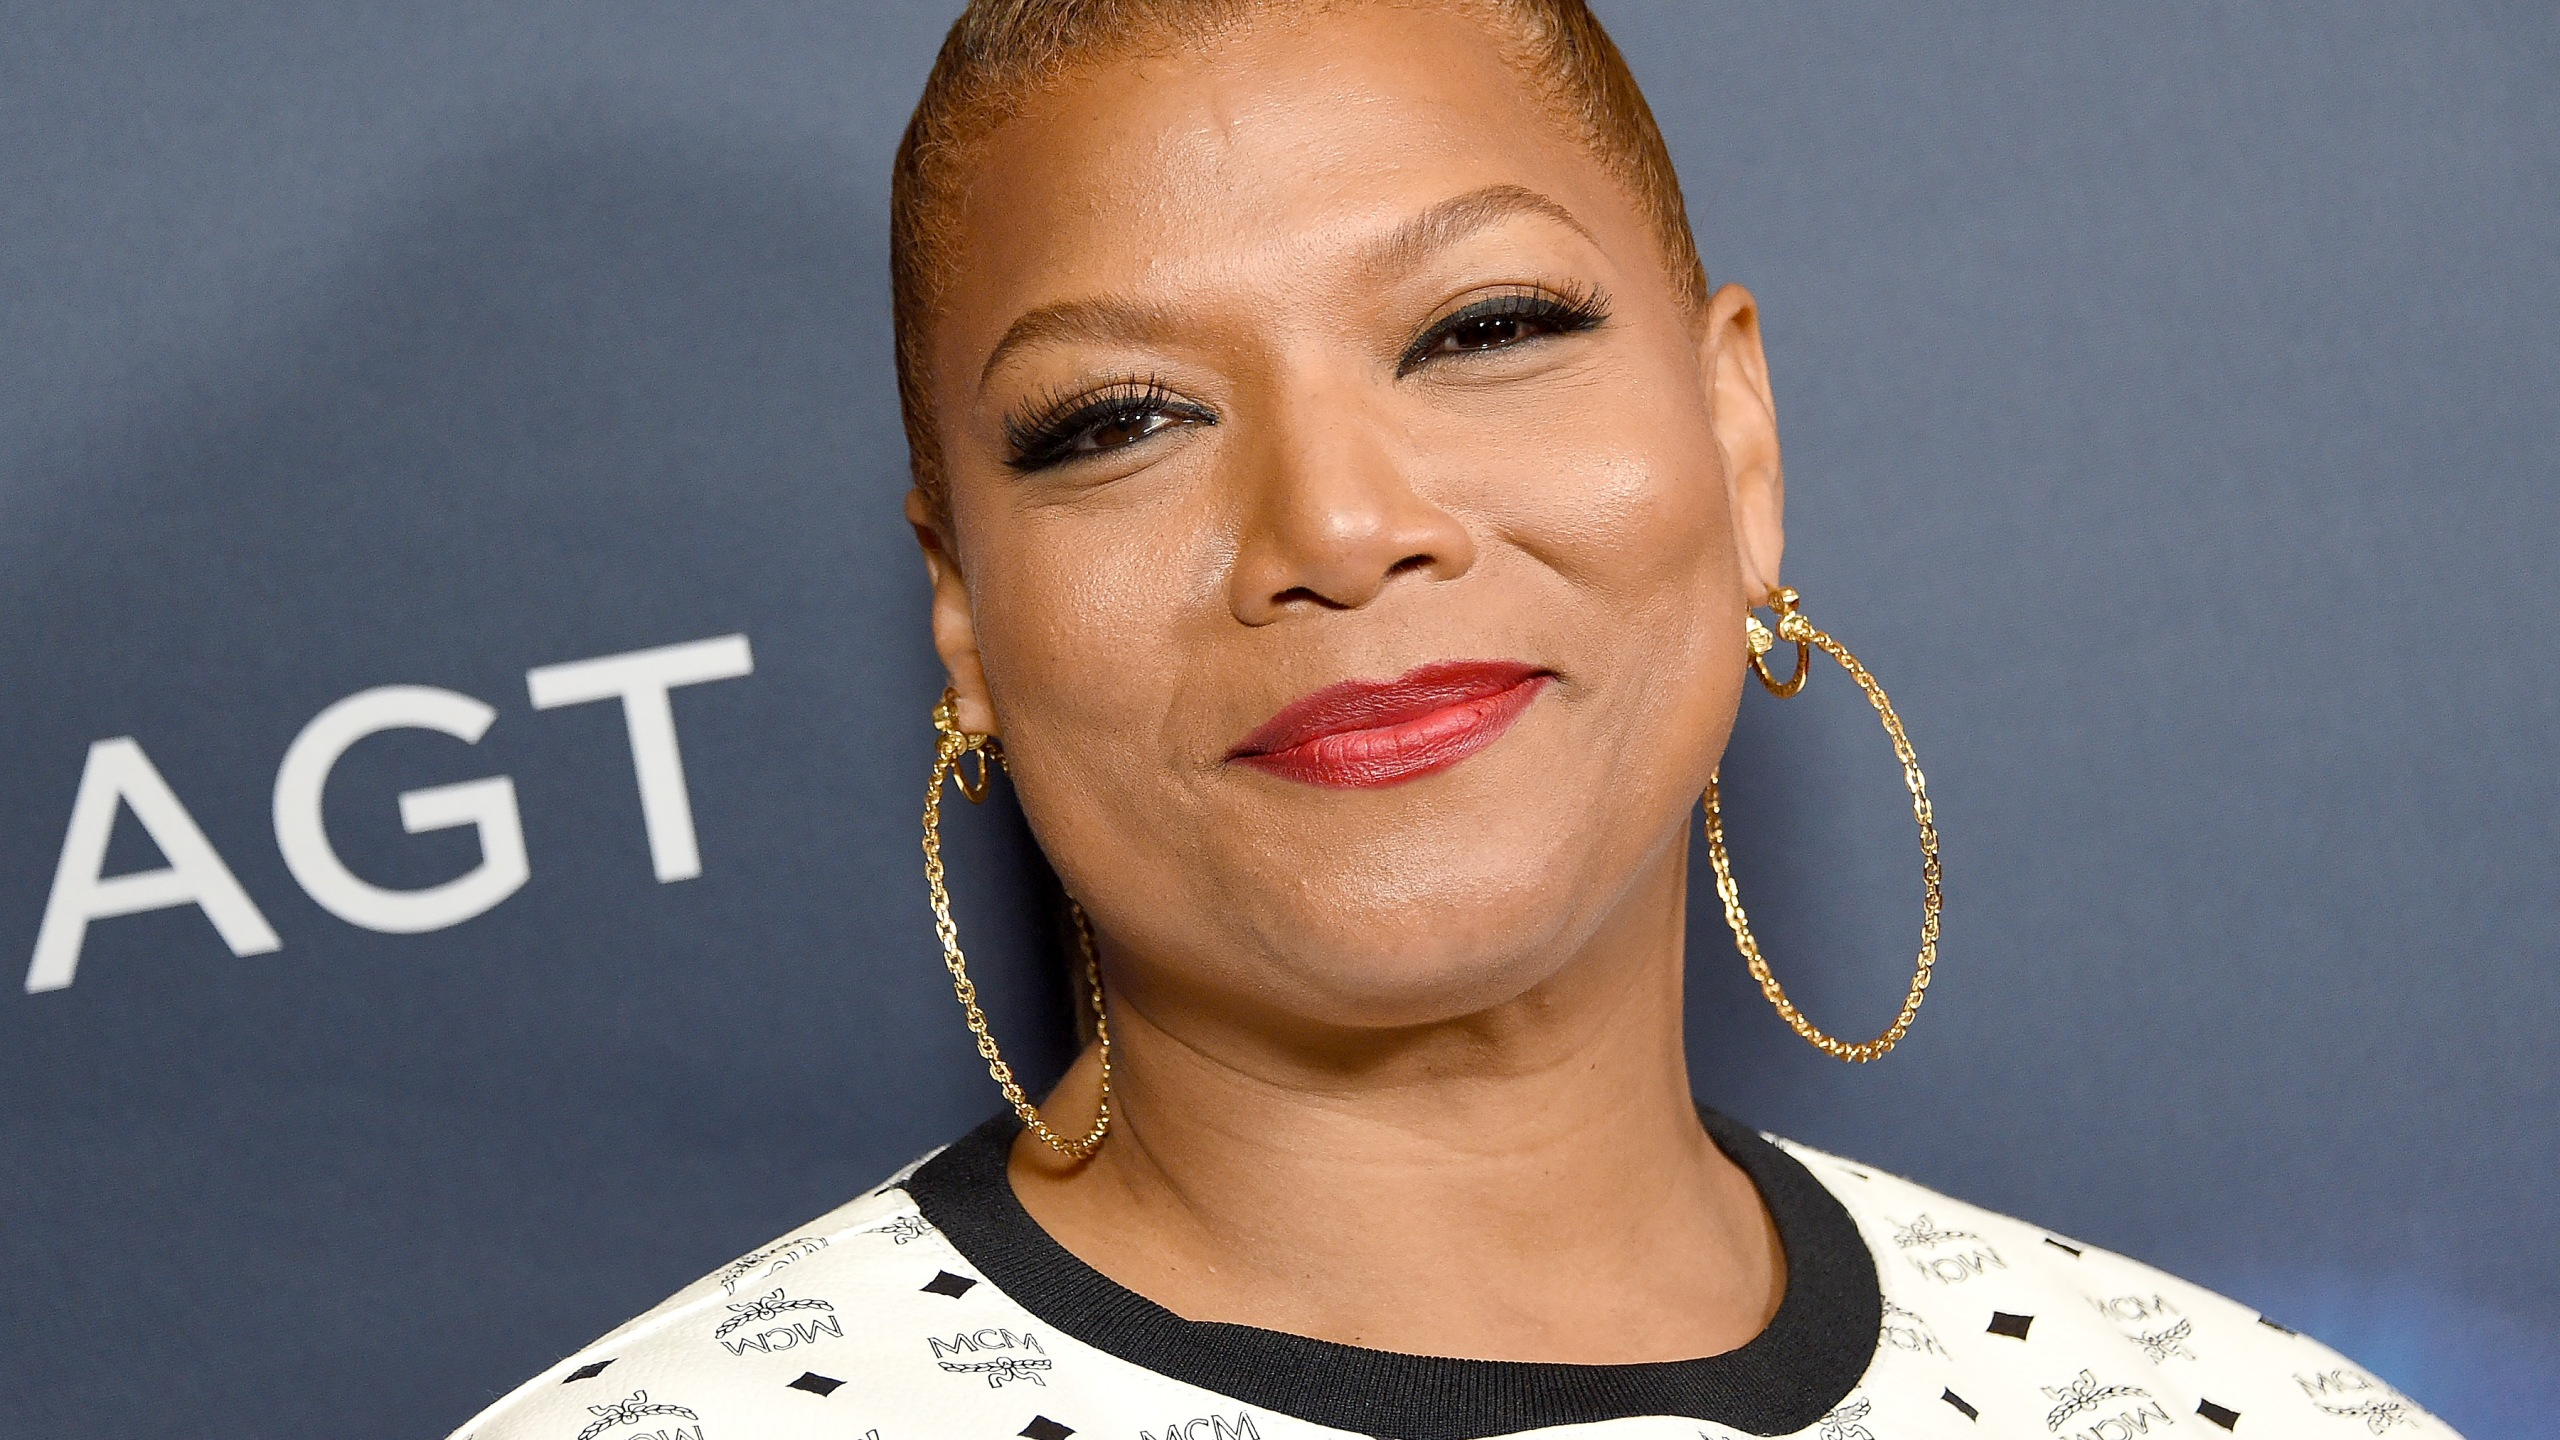 """Queen Latifah arrives at """"America's Got Talent"""" Season 14 Live Show Red Carpet at Dolby Theatre on September 10, 2019 in Hollywood, California. (Credit: Gregg DeGuire/Getty Images)"""